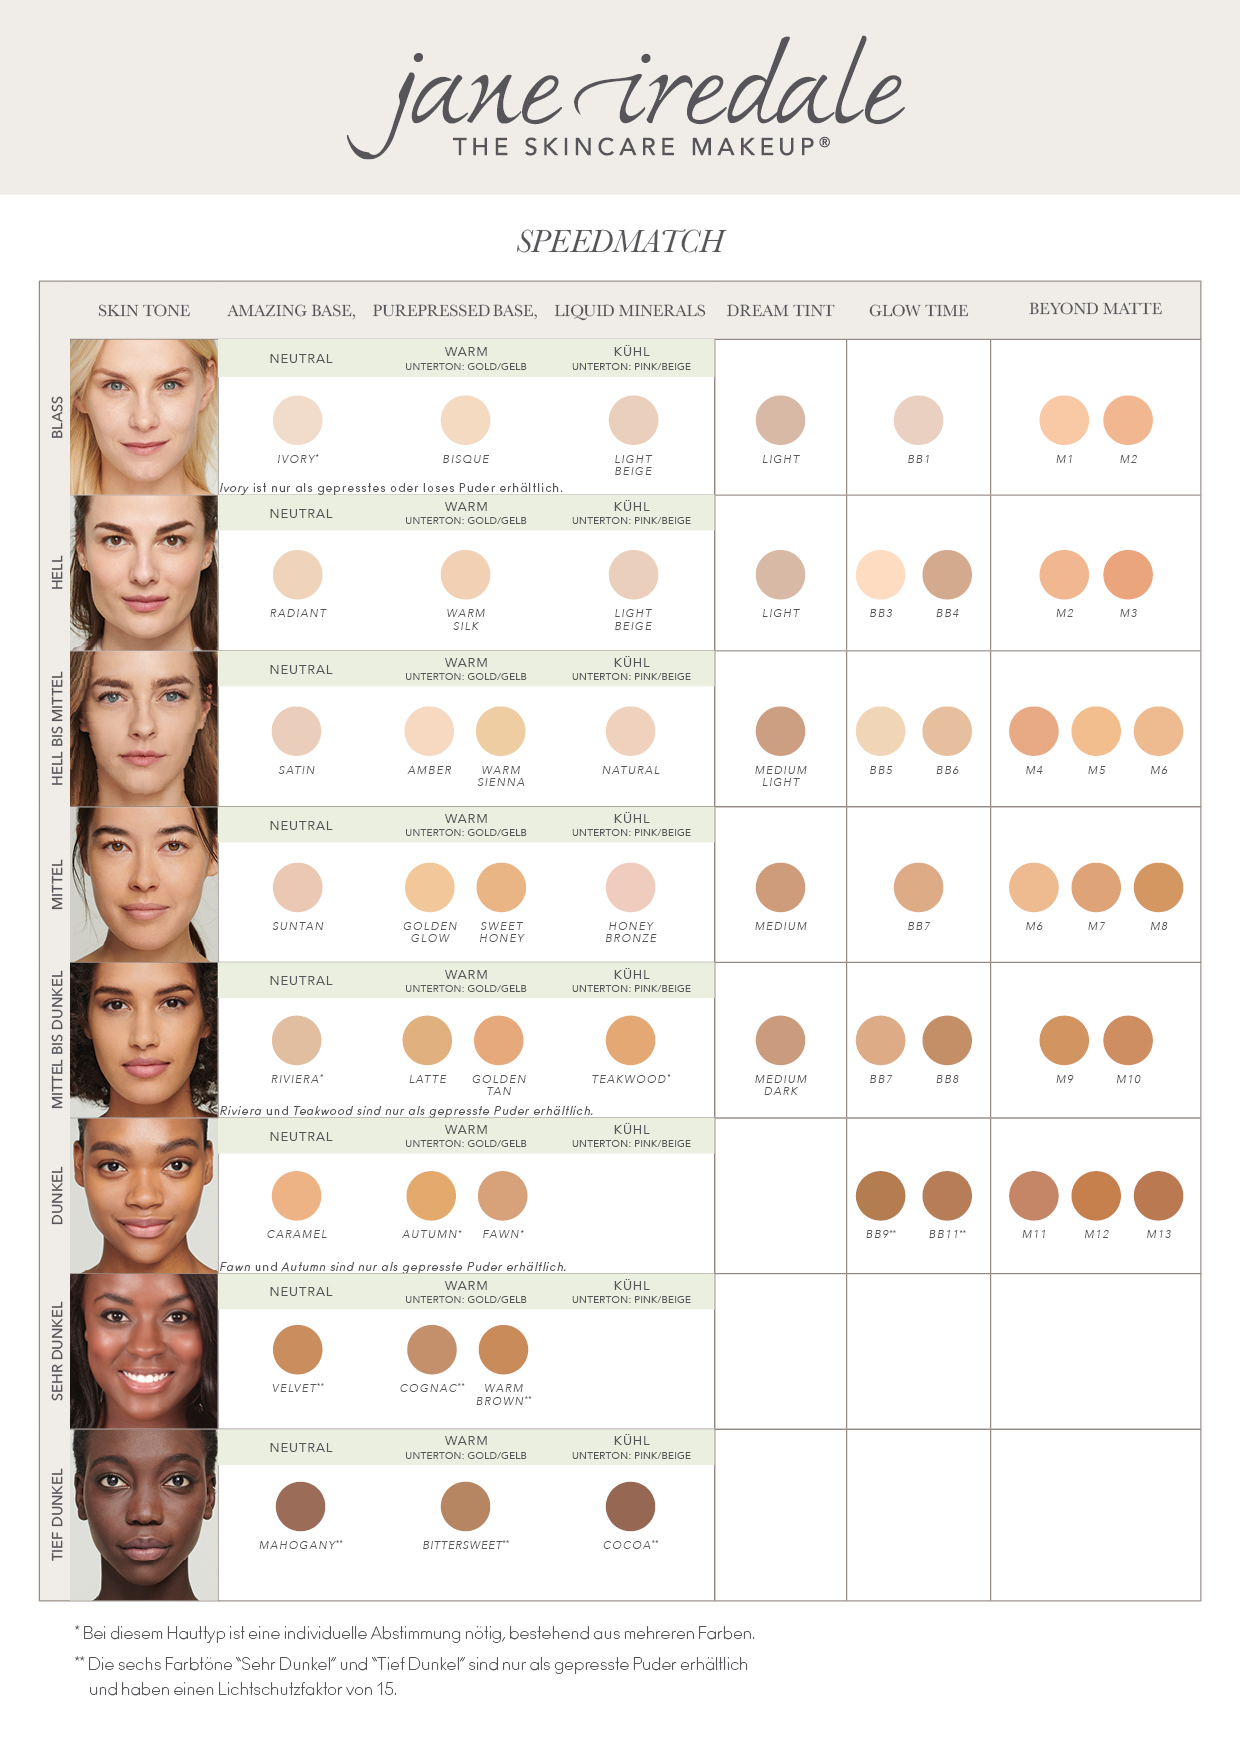 Speedmatch Chart jane iredale THE SKINCARE MAKE-UP